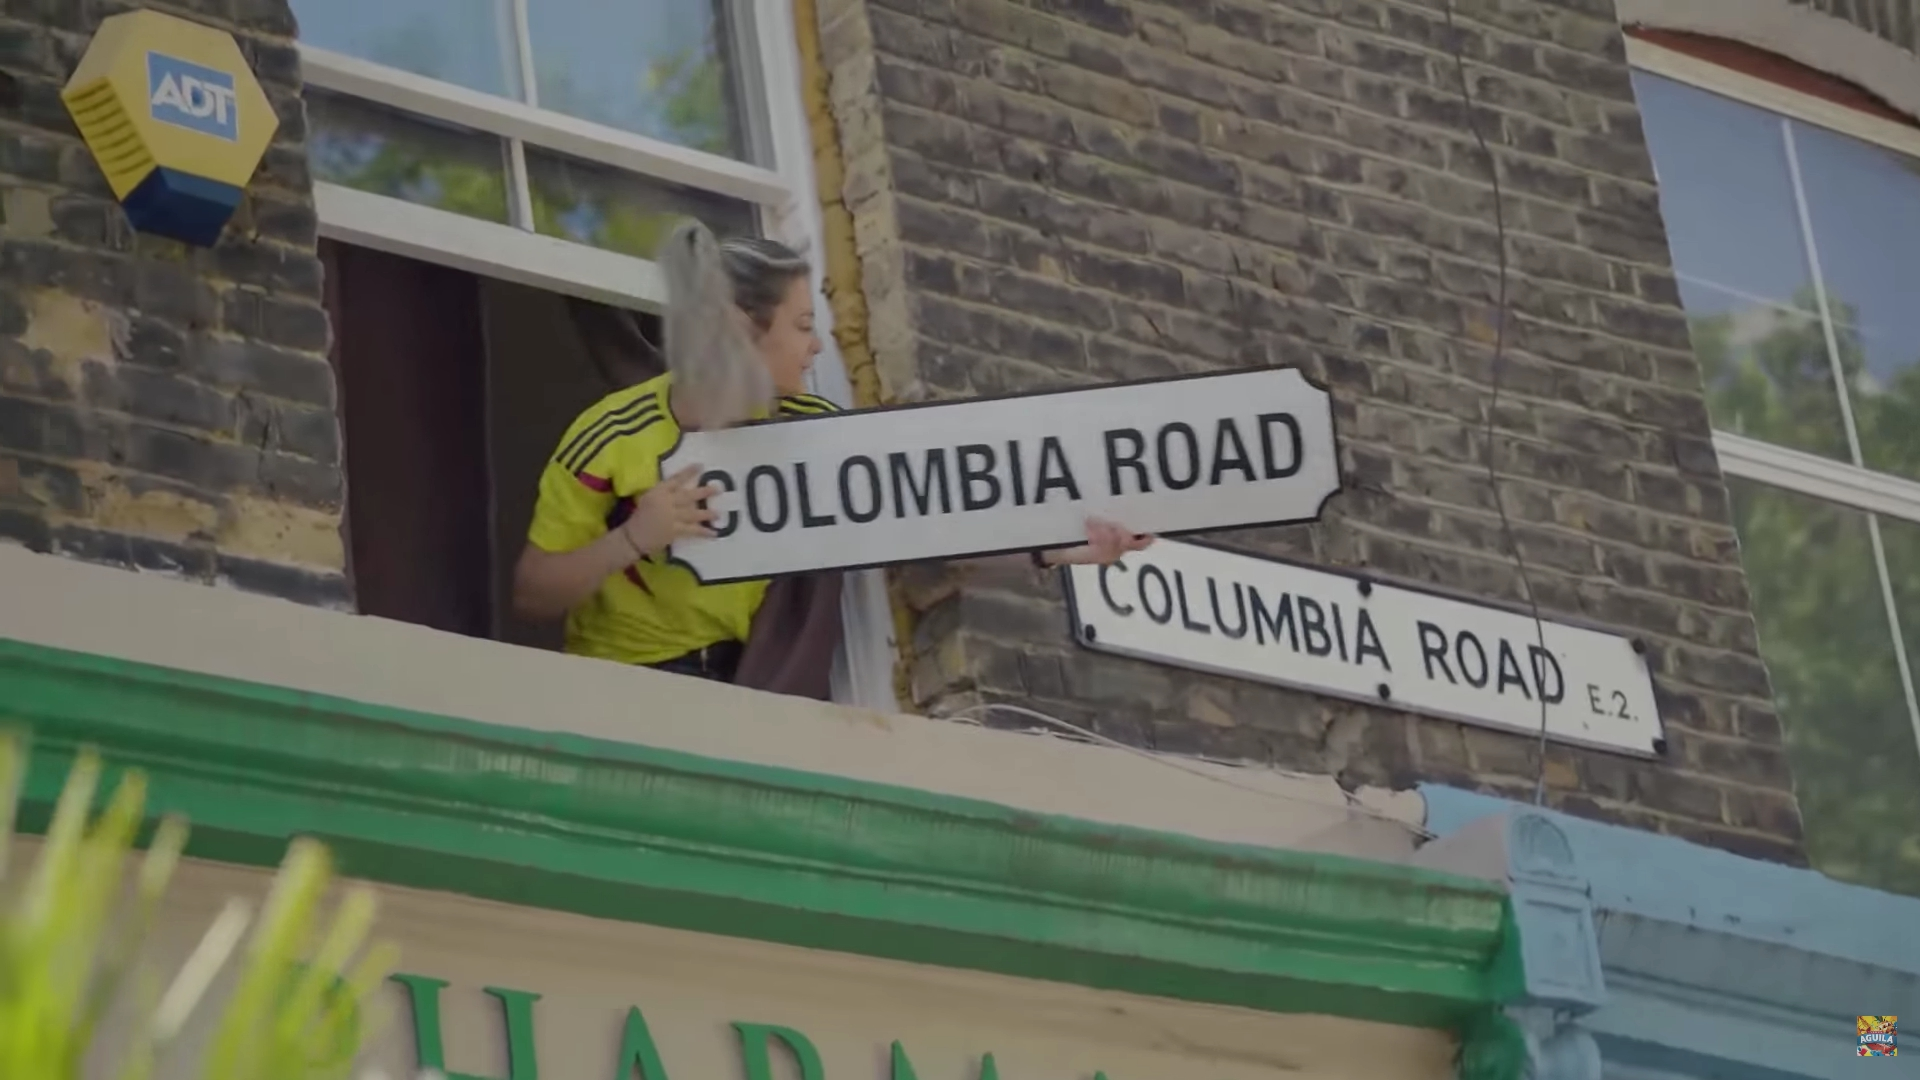 De Columbia a Colombia Road